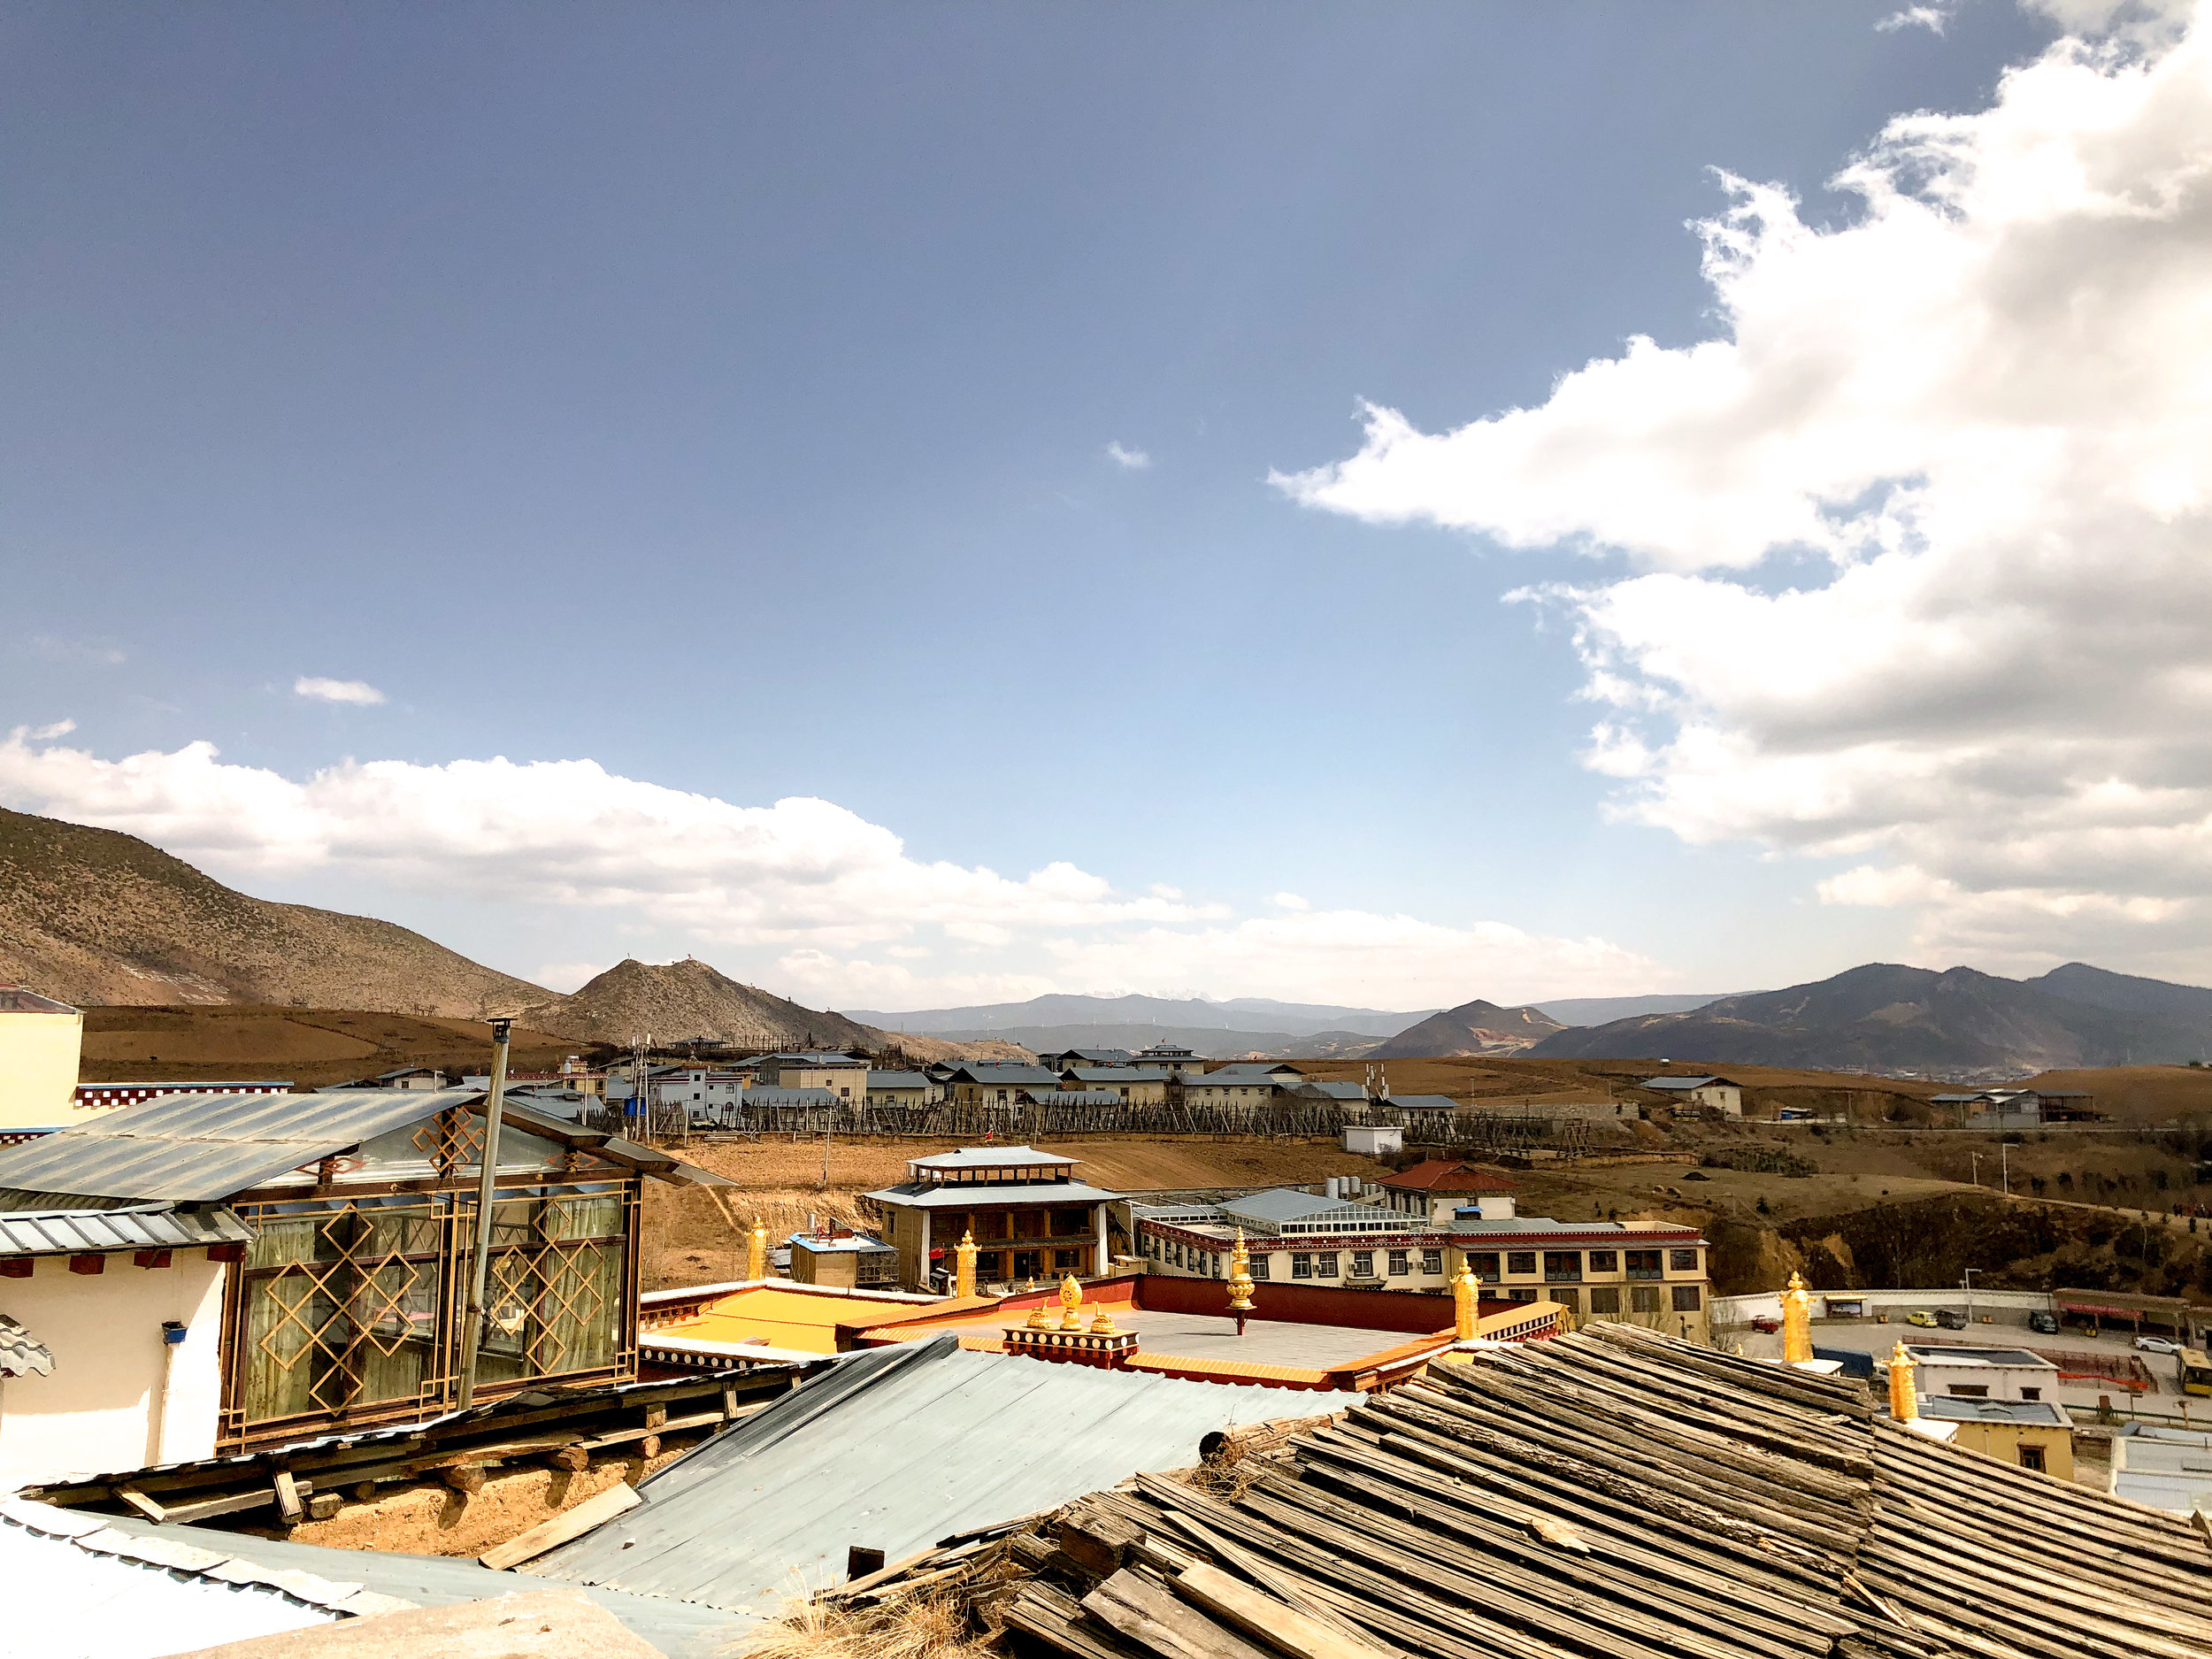 View from the top of the stairs at Songzanlin Monastery